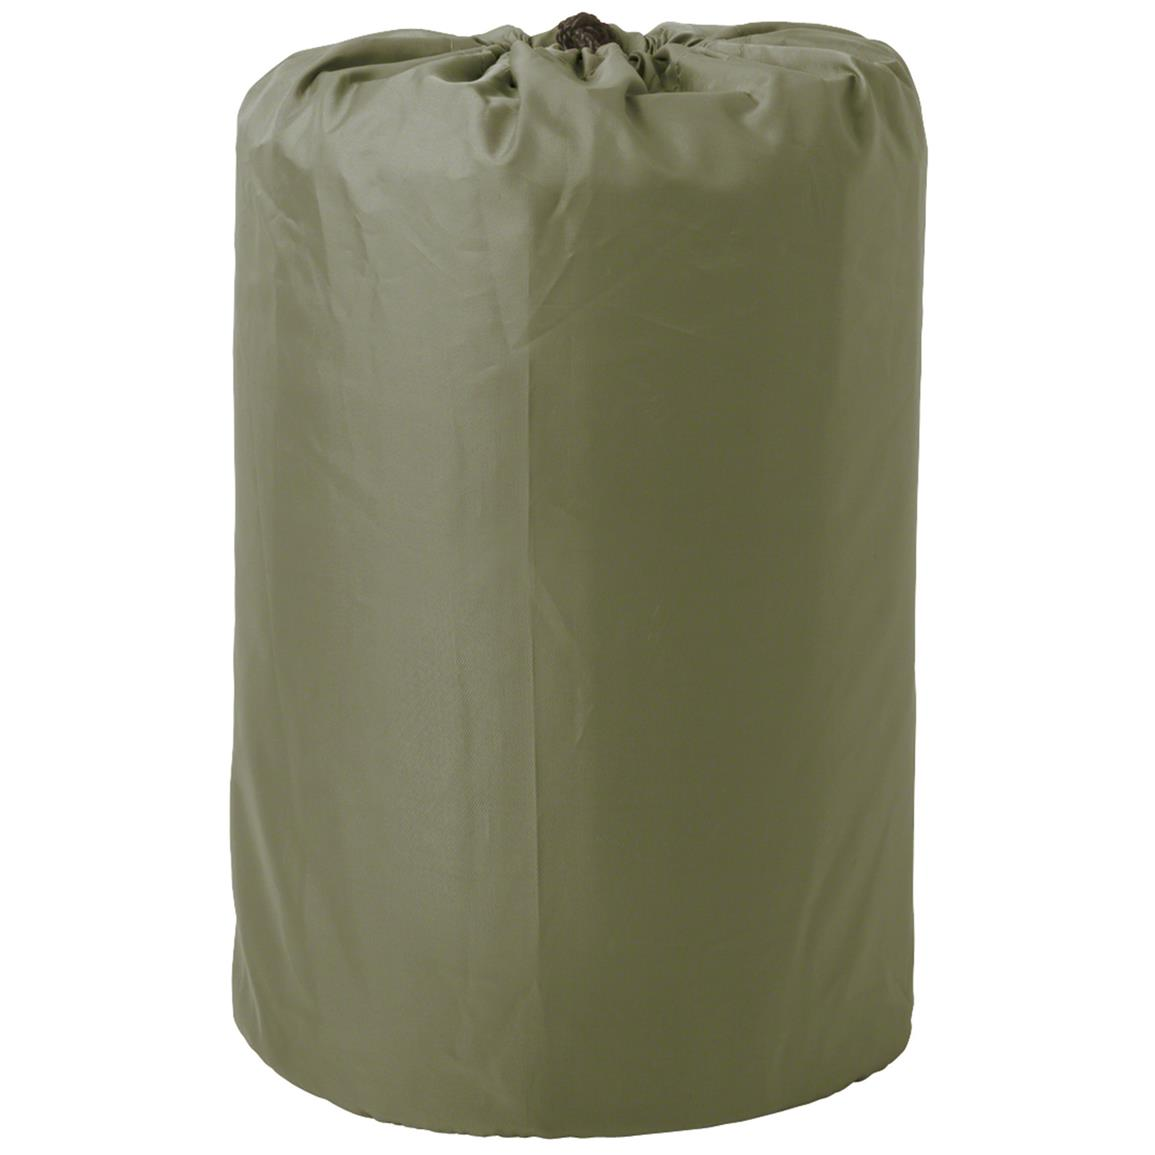 Olive Drab storage bag